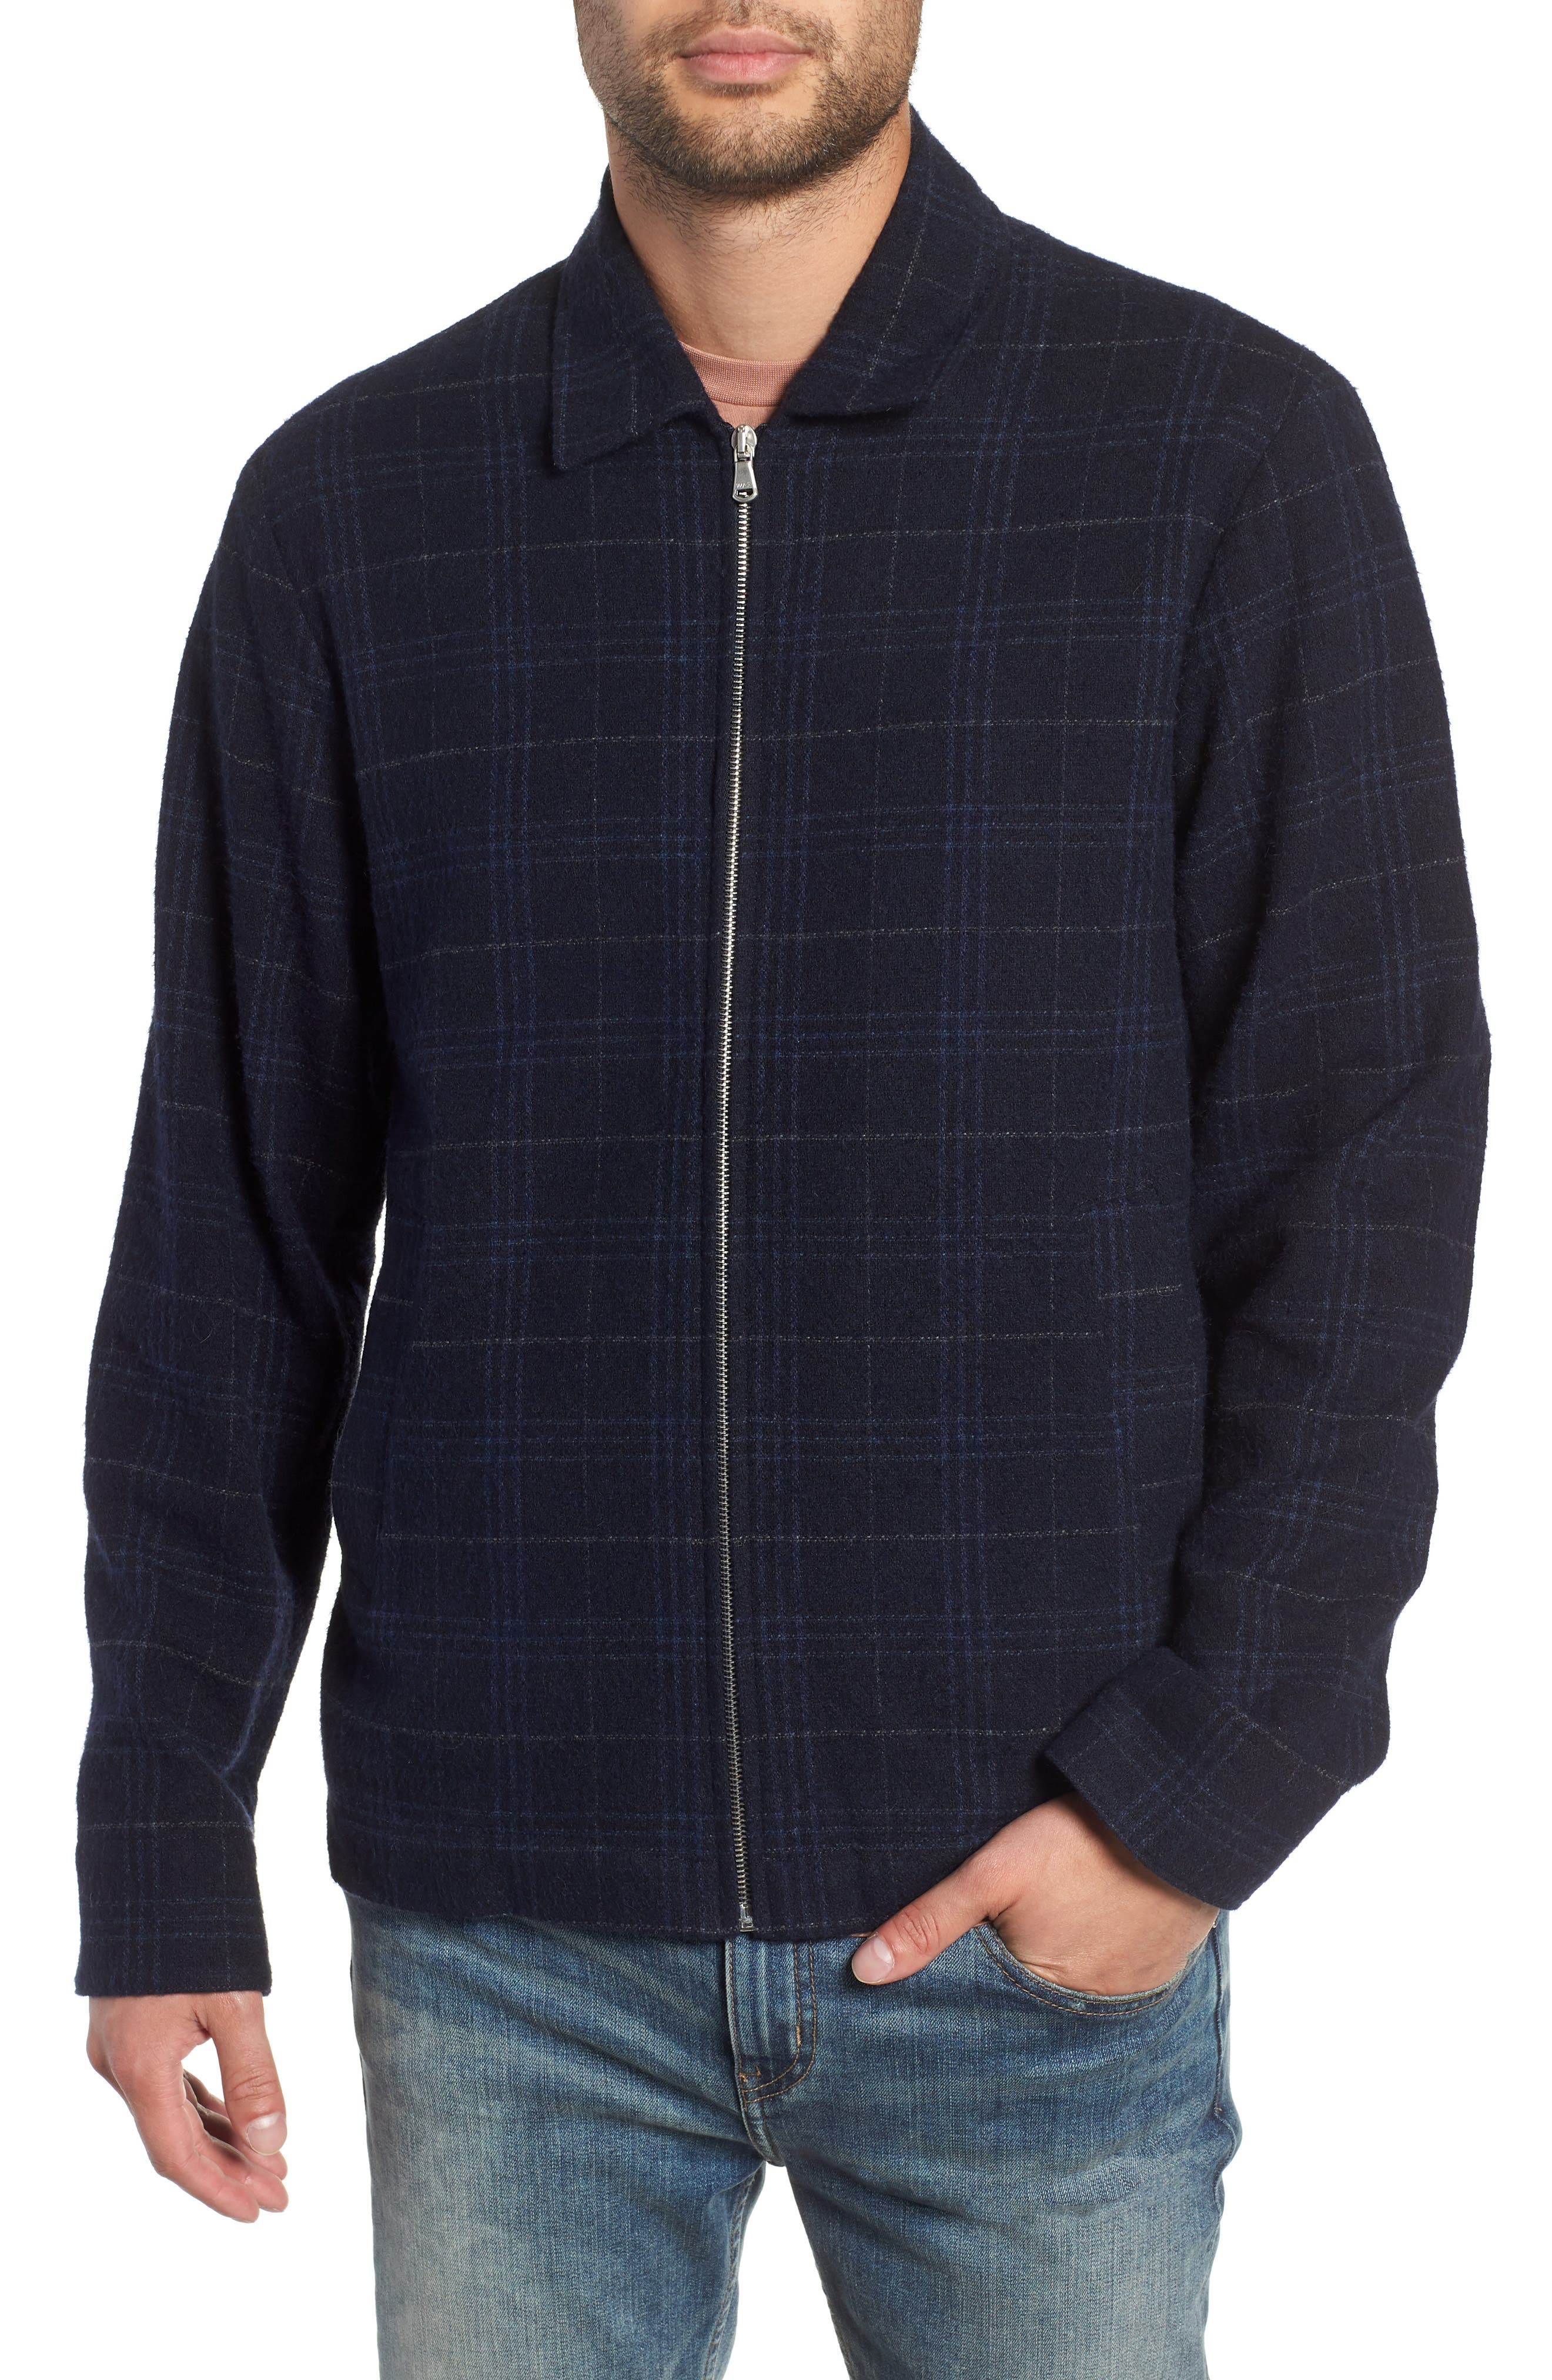 WAX LONDON,                             Witham Coach's Jacket,                             Alternate thumbnail 4, color,                             NAVY CHECK